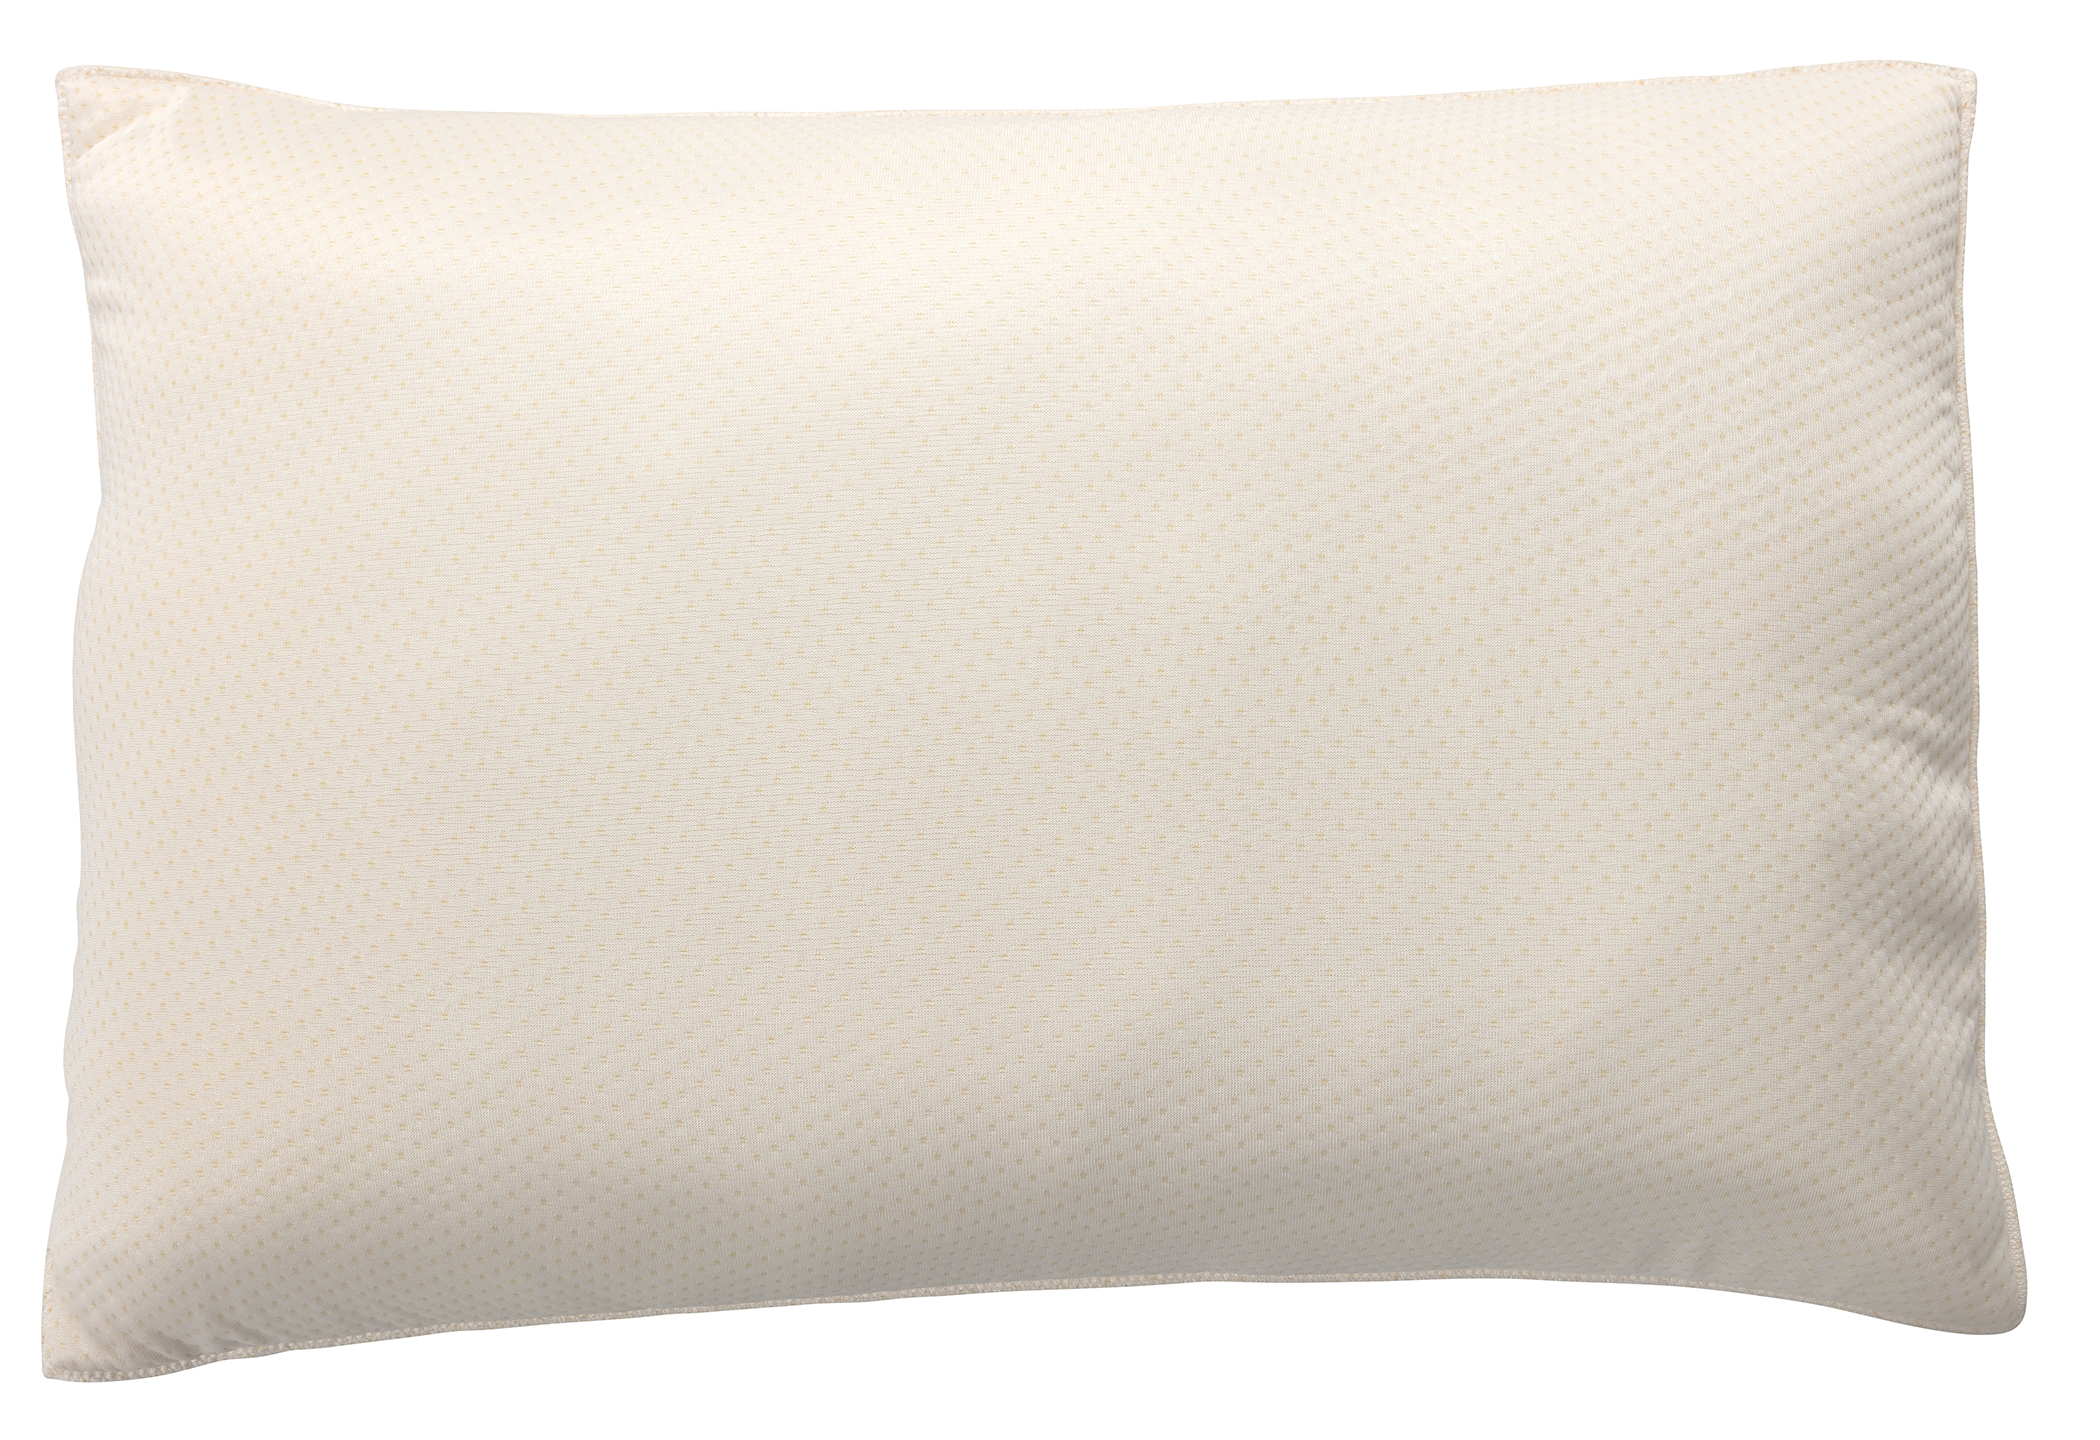 Picture of Memory Foam Pillows